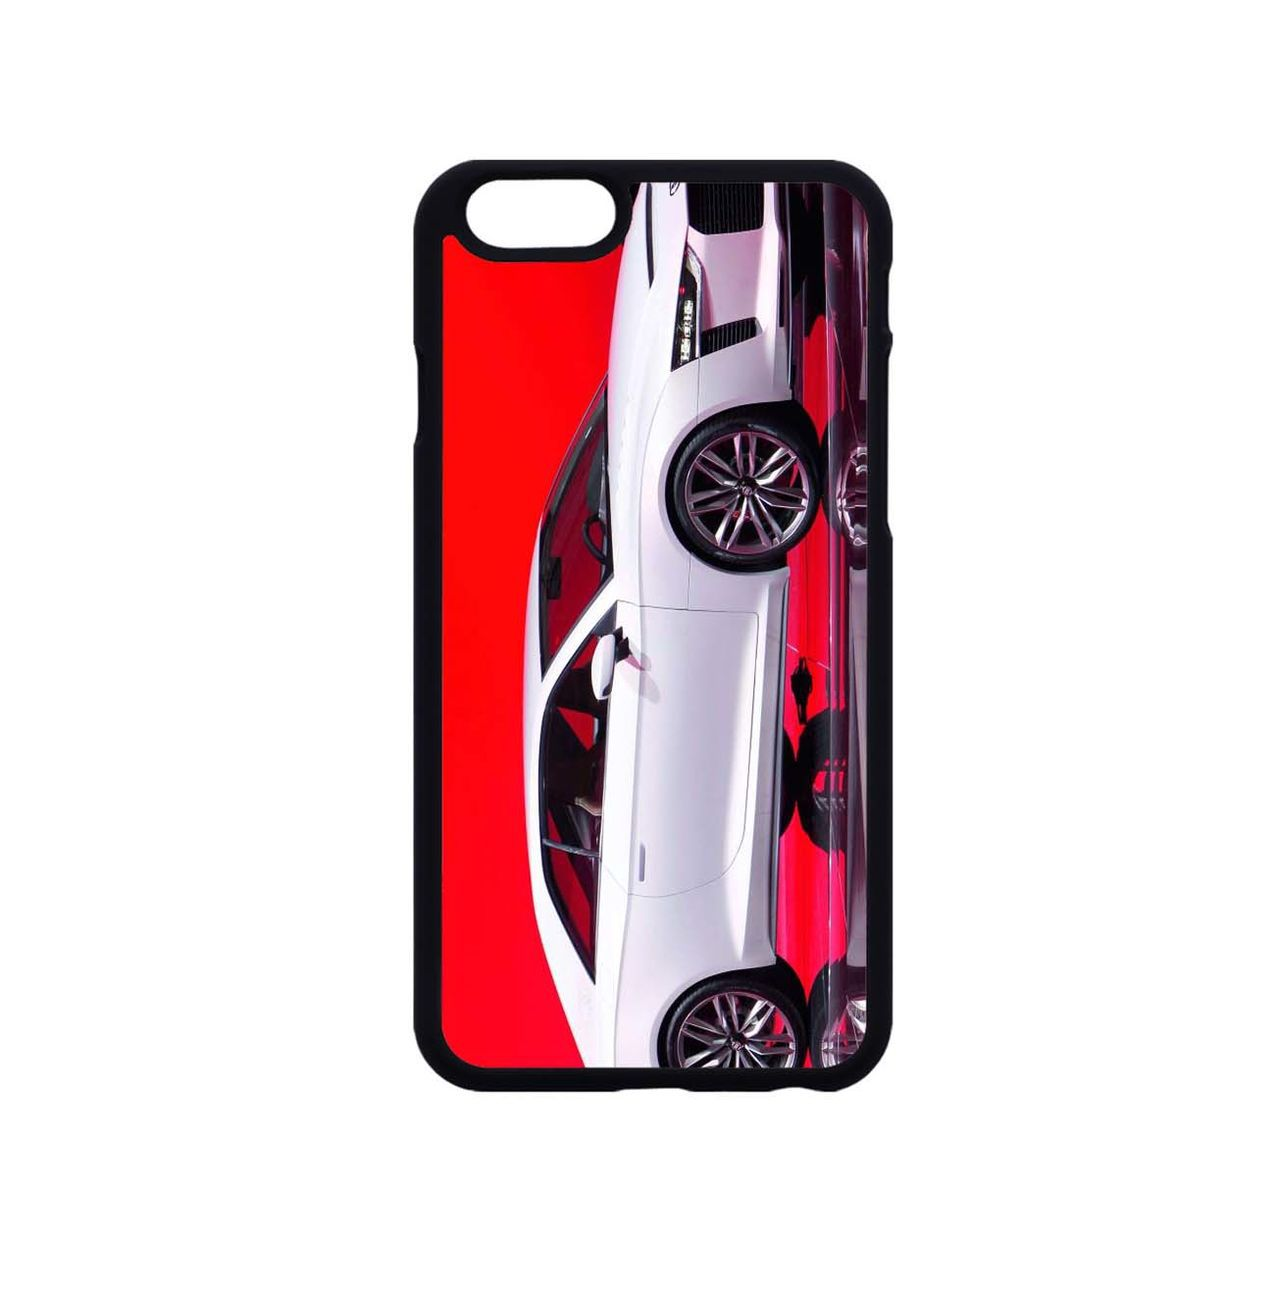 Apple iPhone 6 Printed Cover By Magic cases